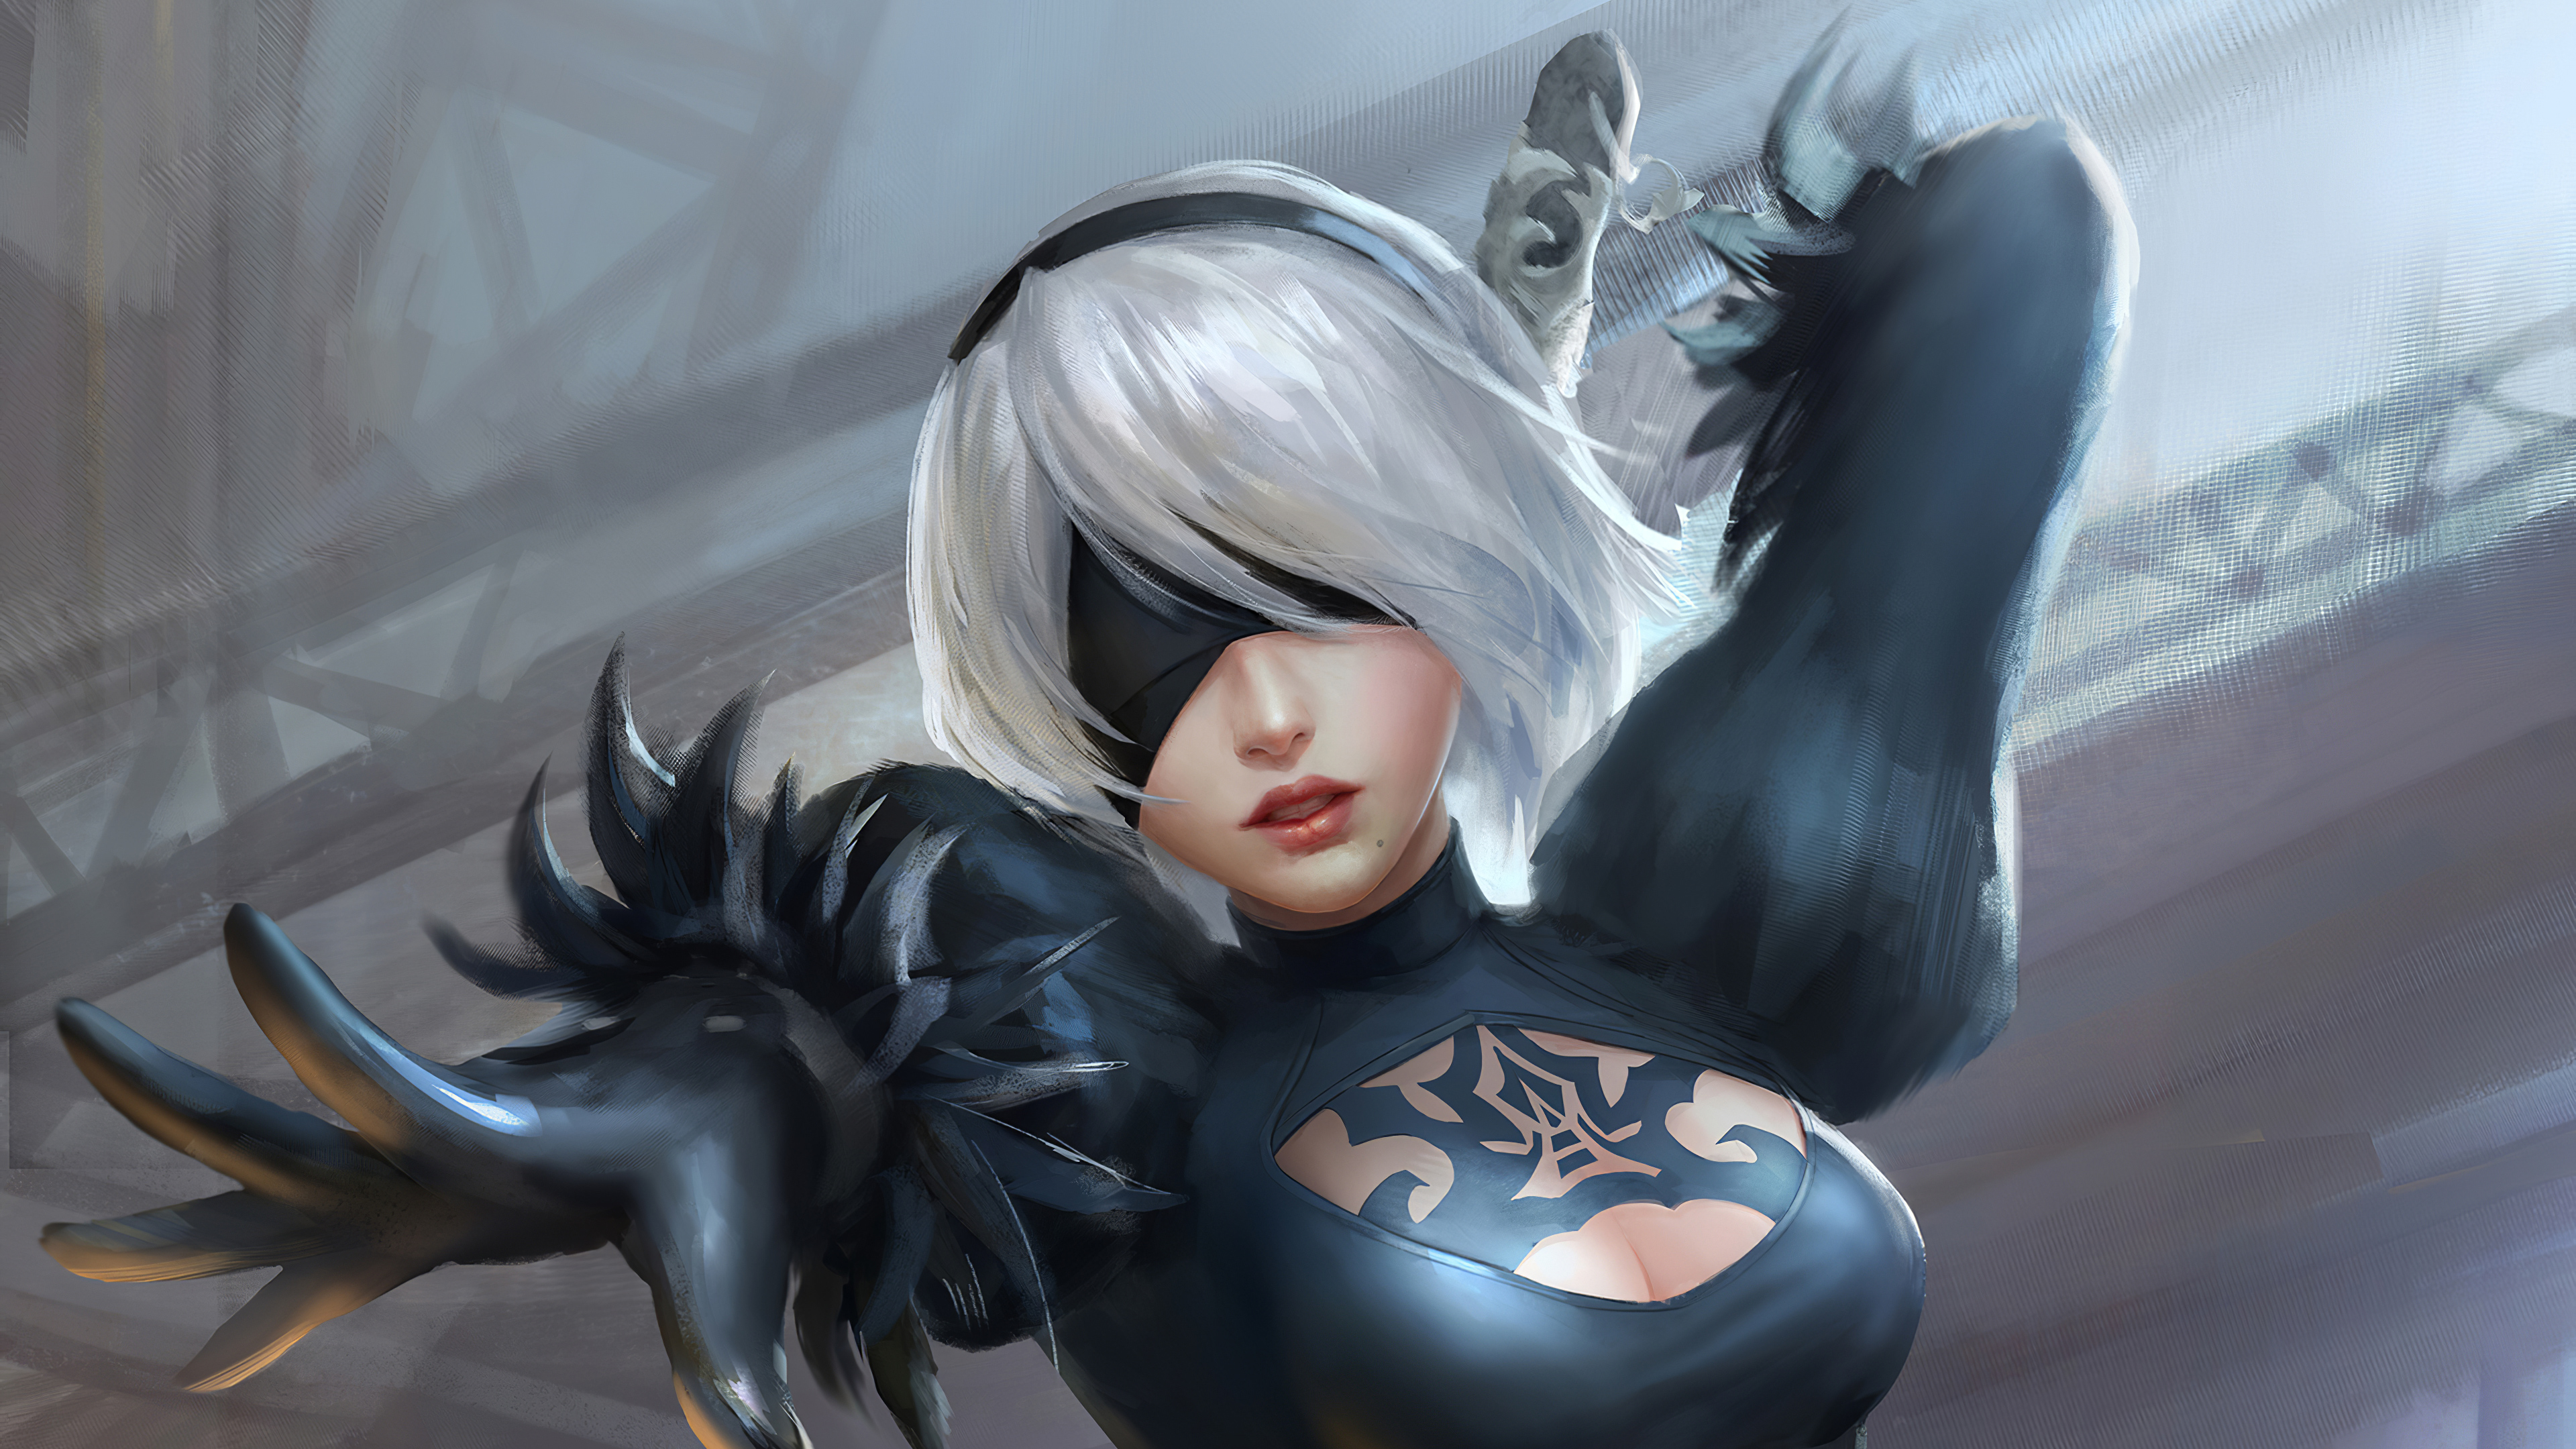 2b nier artwork 1581276081 - 2b Nier ArtWork - 2b Nier game wallpapers 4k, 2b Nier Art wallpapers, 2b Nier 4k wallpapers